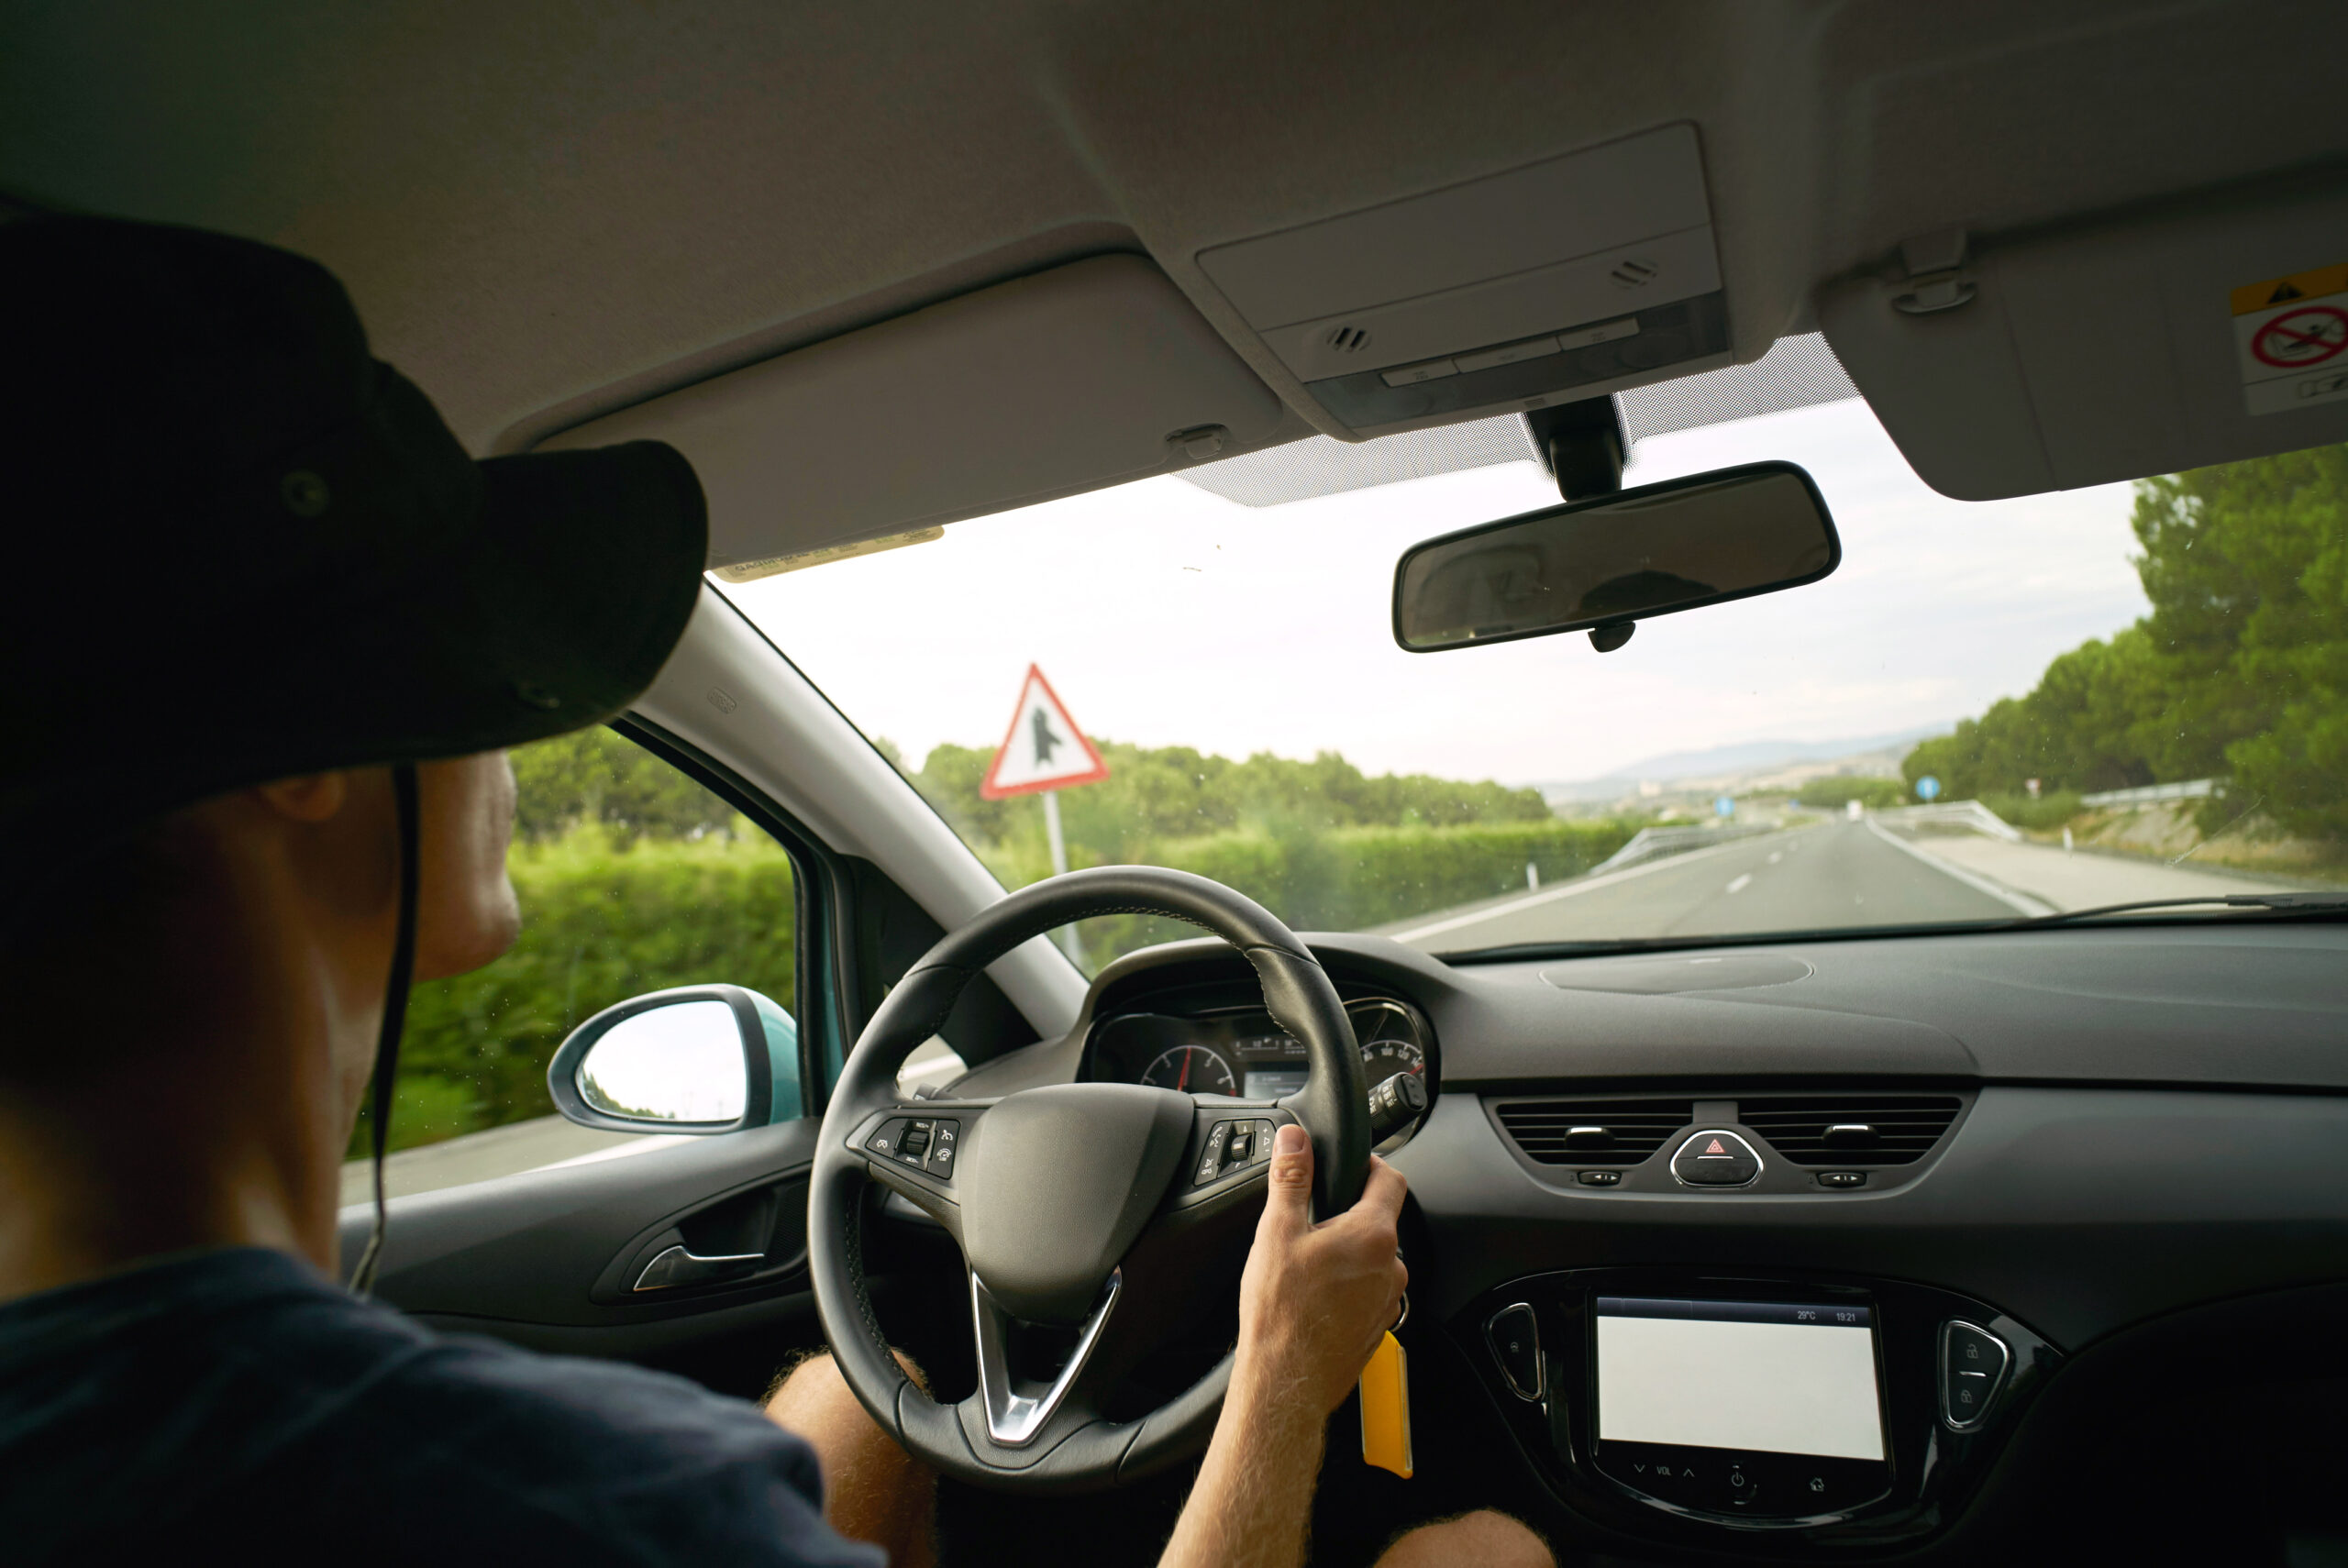 Car traveling and gps navigation on interurban road